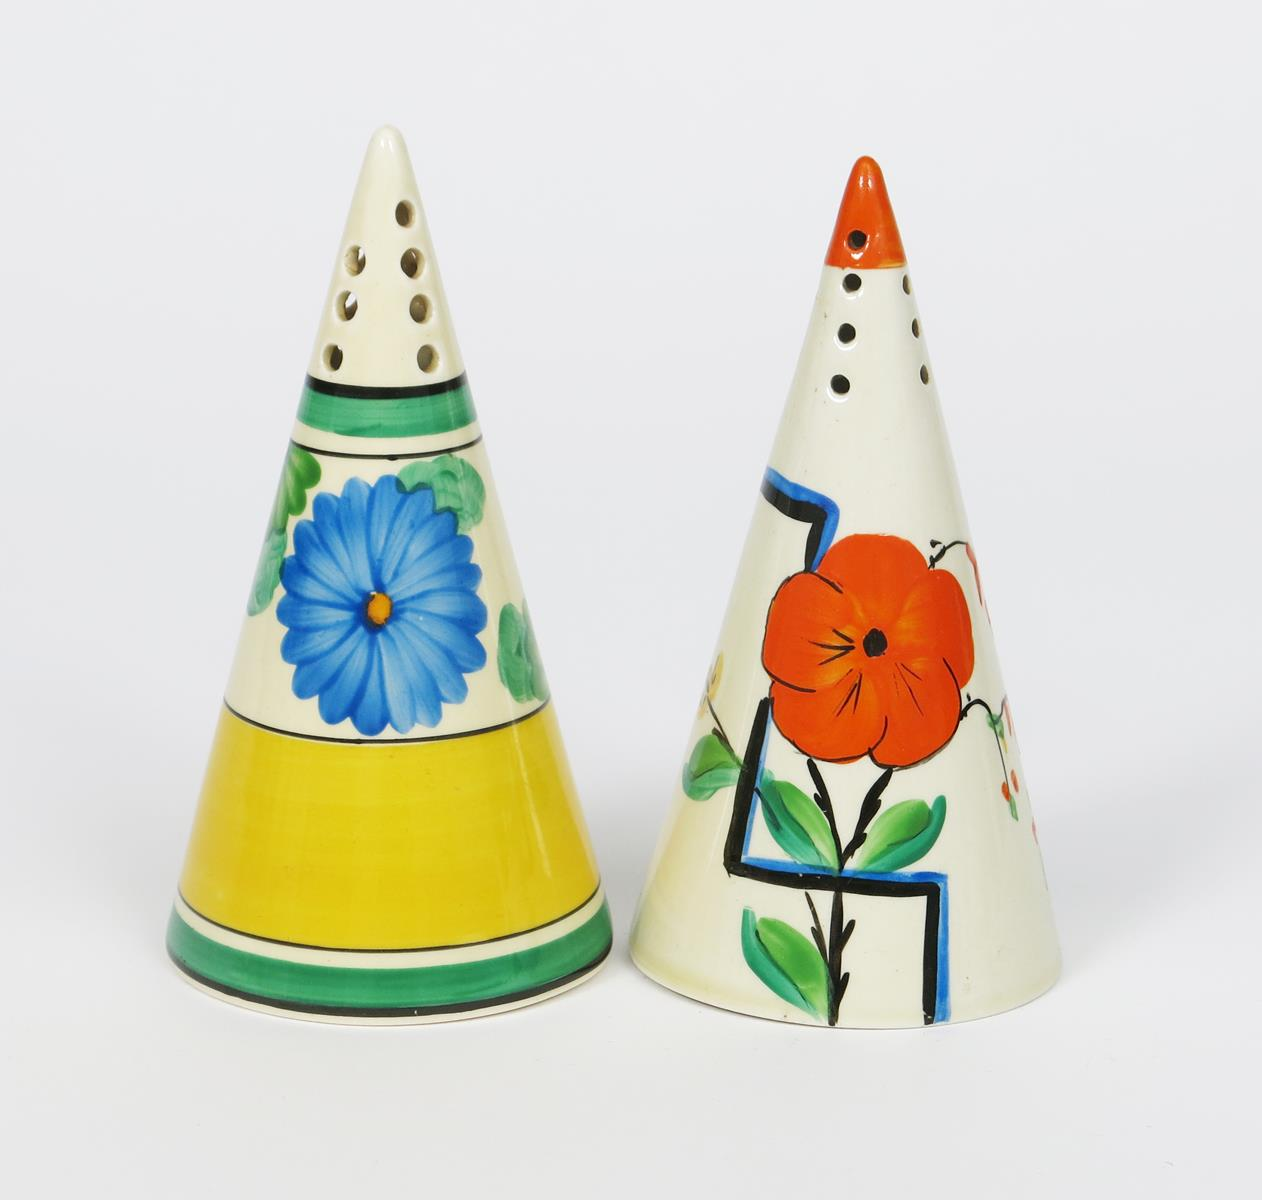 'Sun-gay' a Clarice Cliff Bizarre Conical sugar sifter, painted in colours and a Honeyglaze